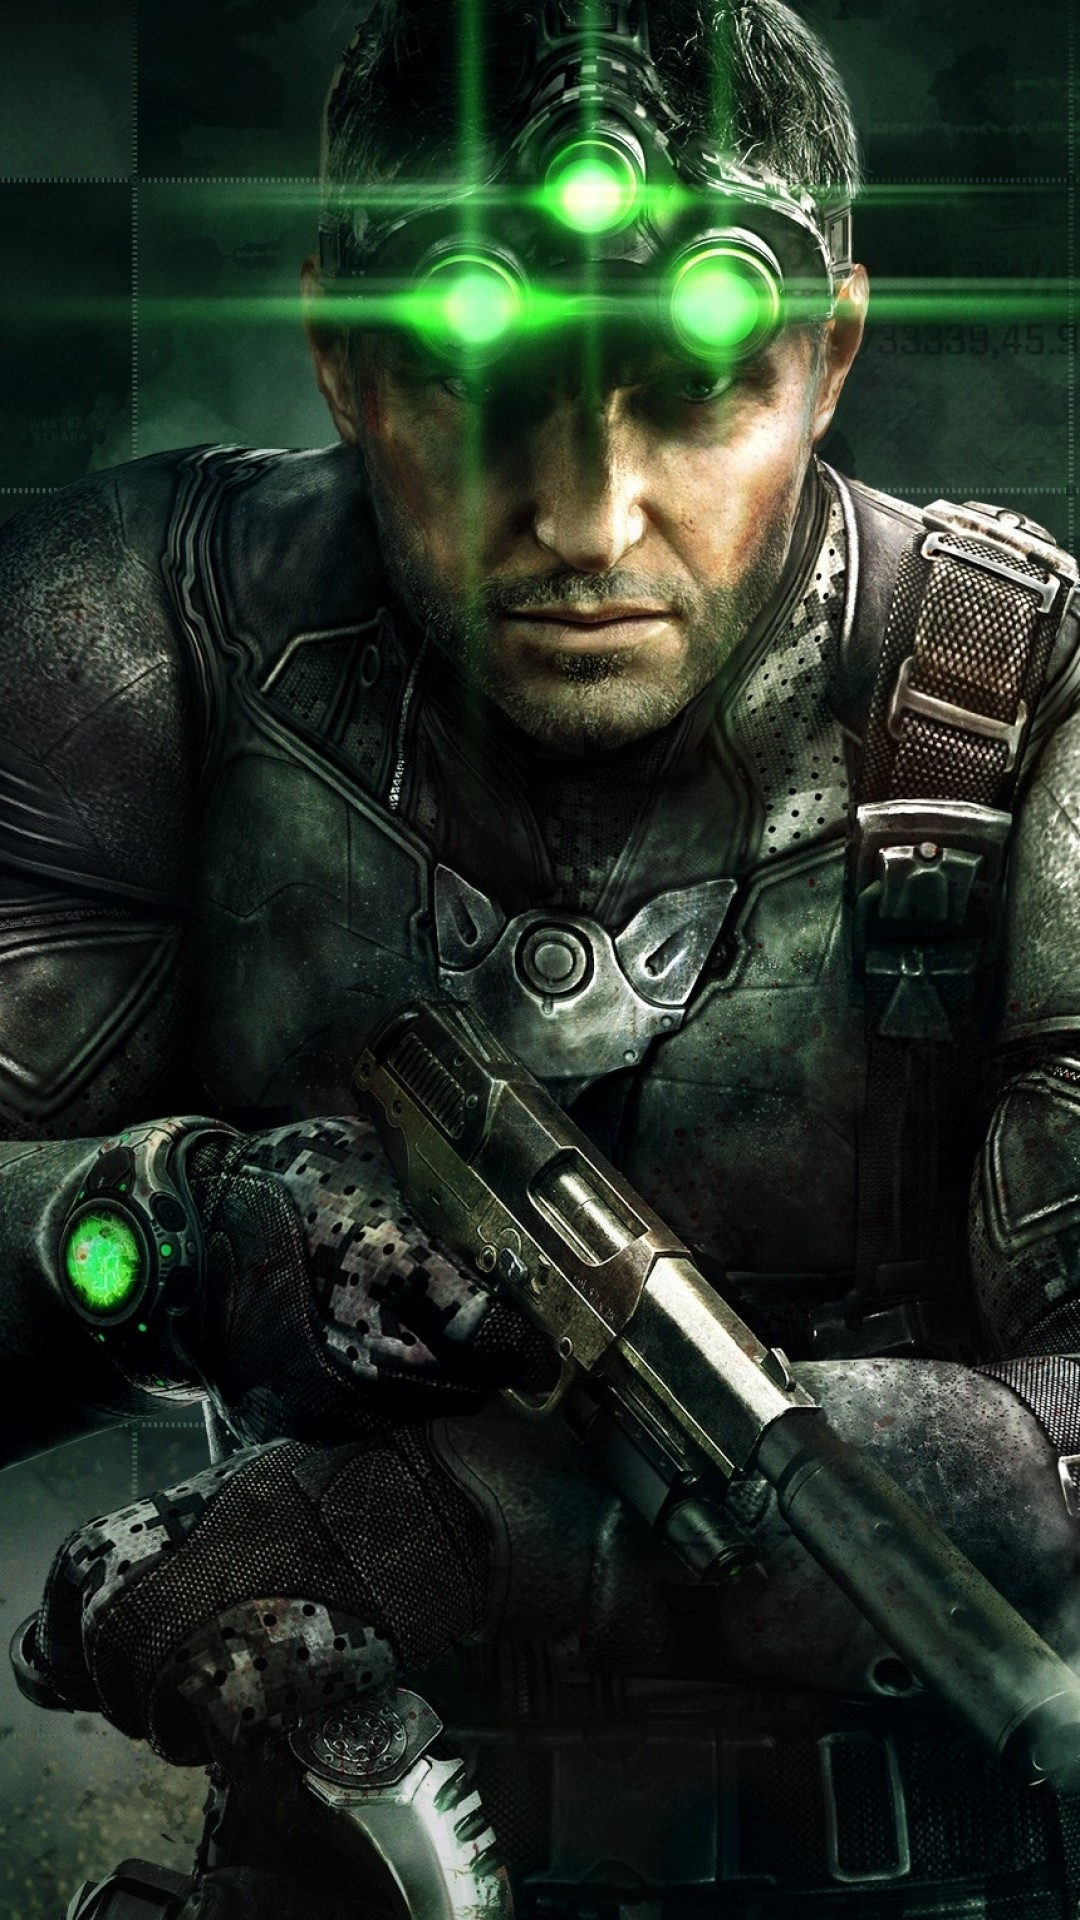 Iphone 8 Plus Hd Wallpaper Splinter Cell Conviction Wallpaper 82 Images